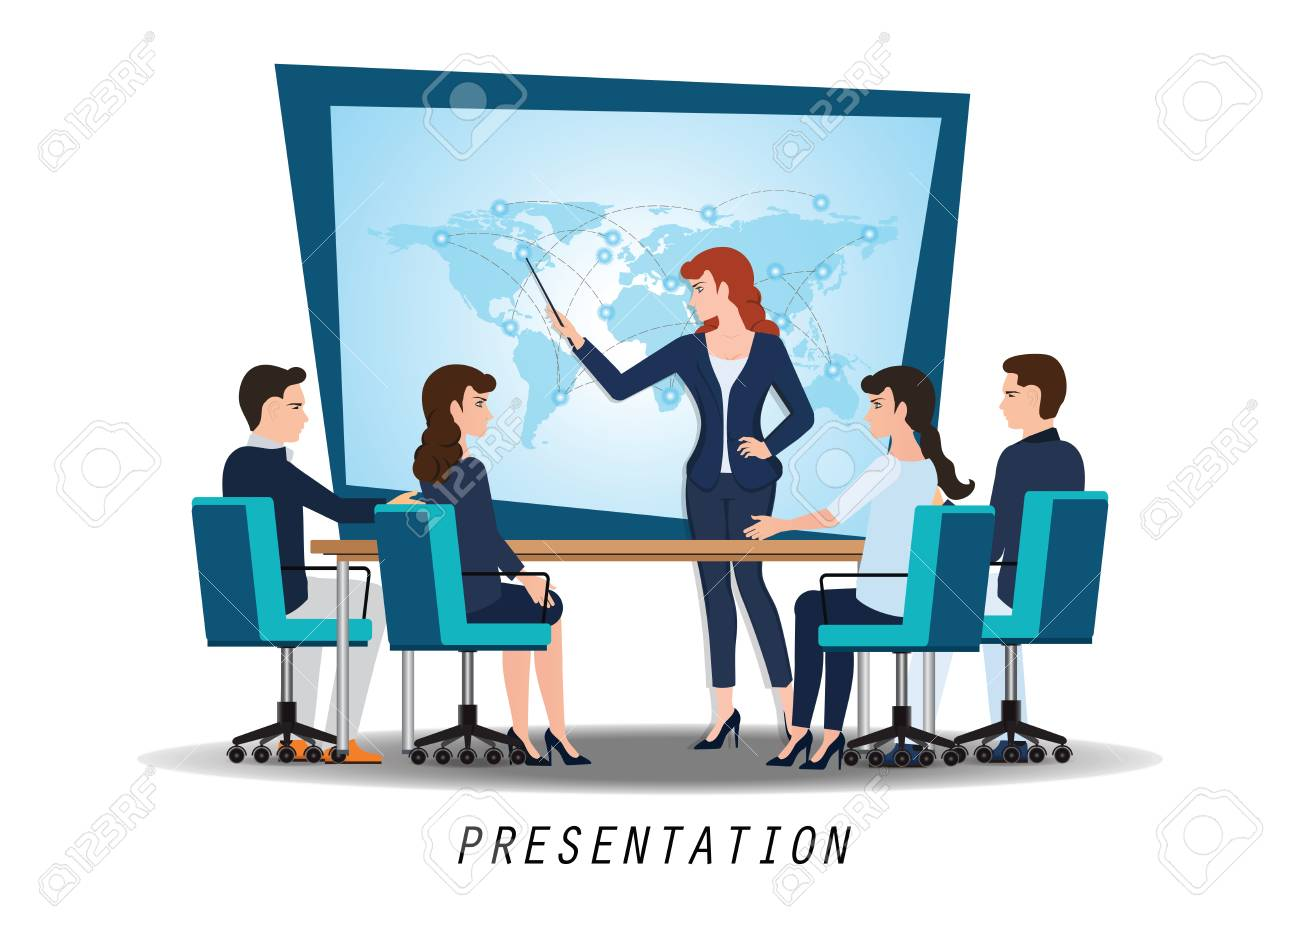 business woman presenting world business on whiteboard with business